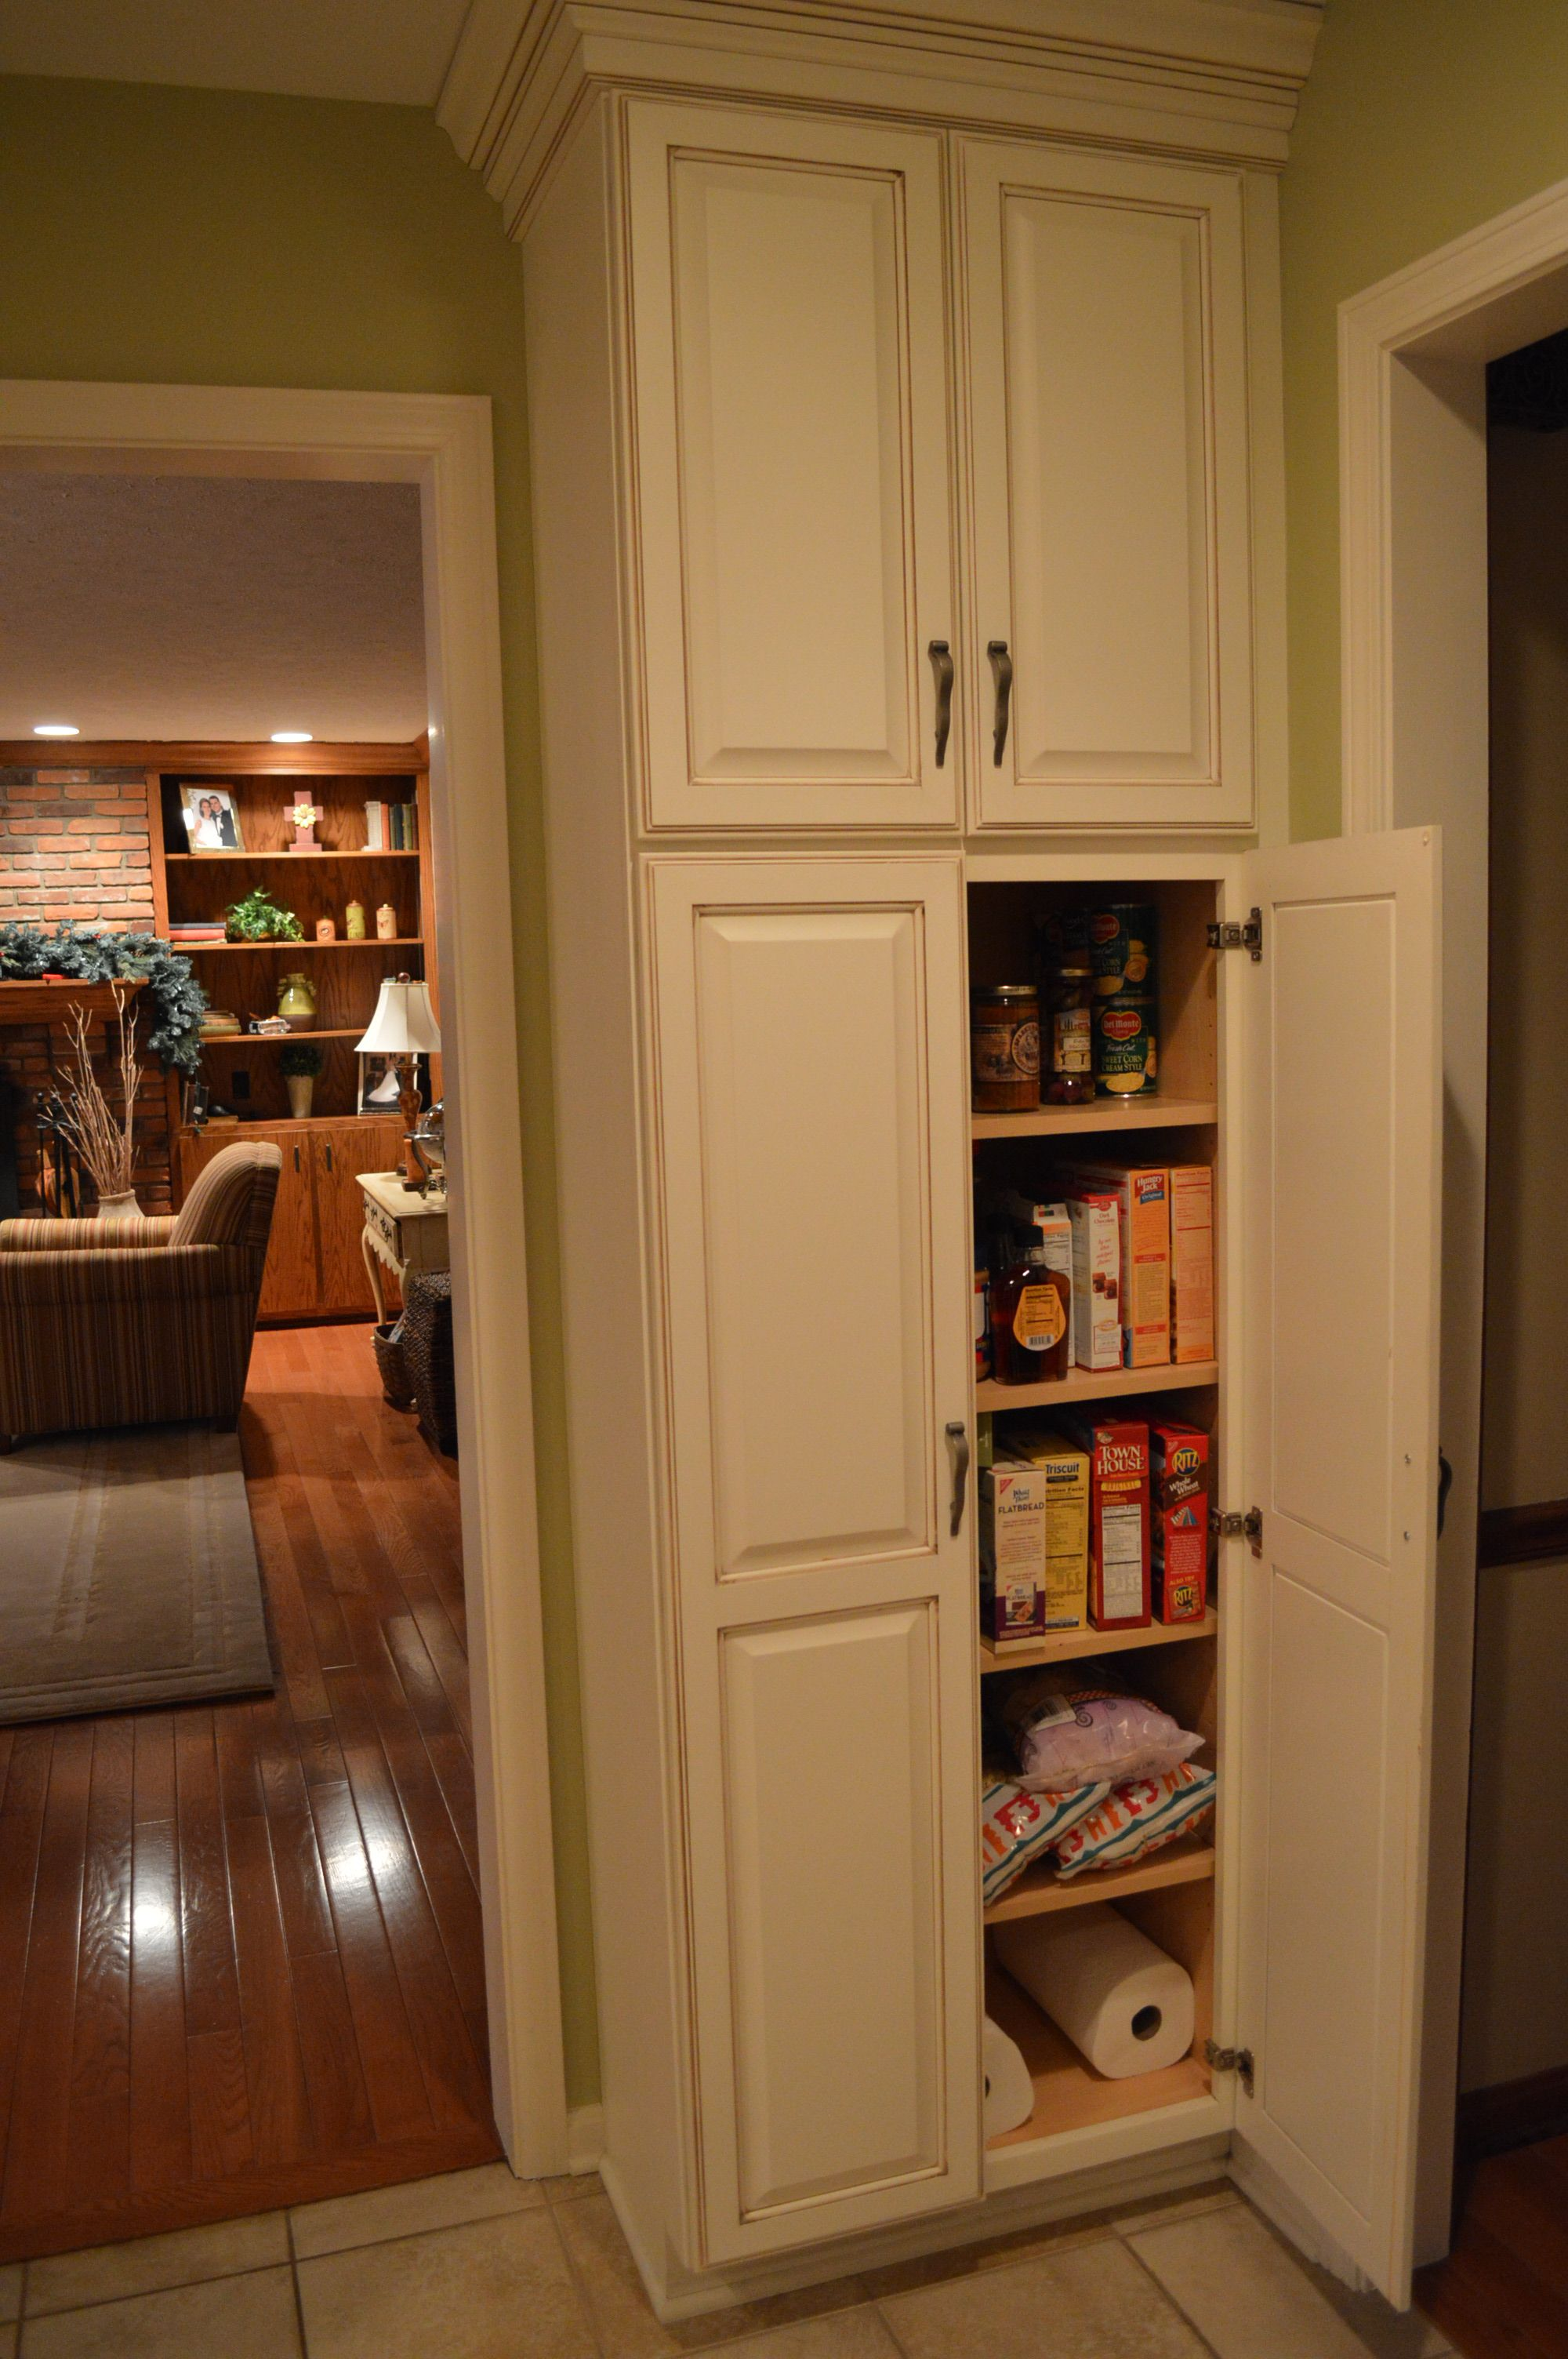 Simple White Kitchen Pantry Cabinet From Timber Set On The Corner Between Two Doors Pantry